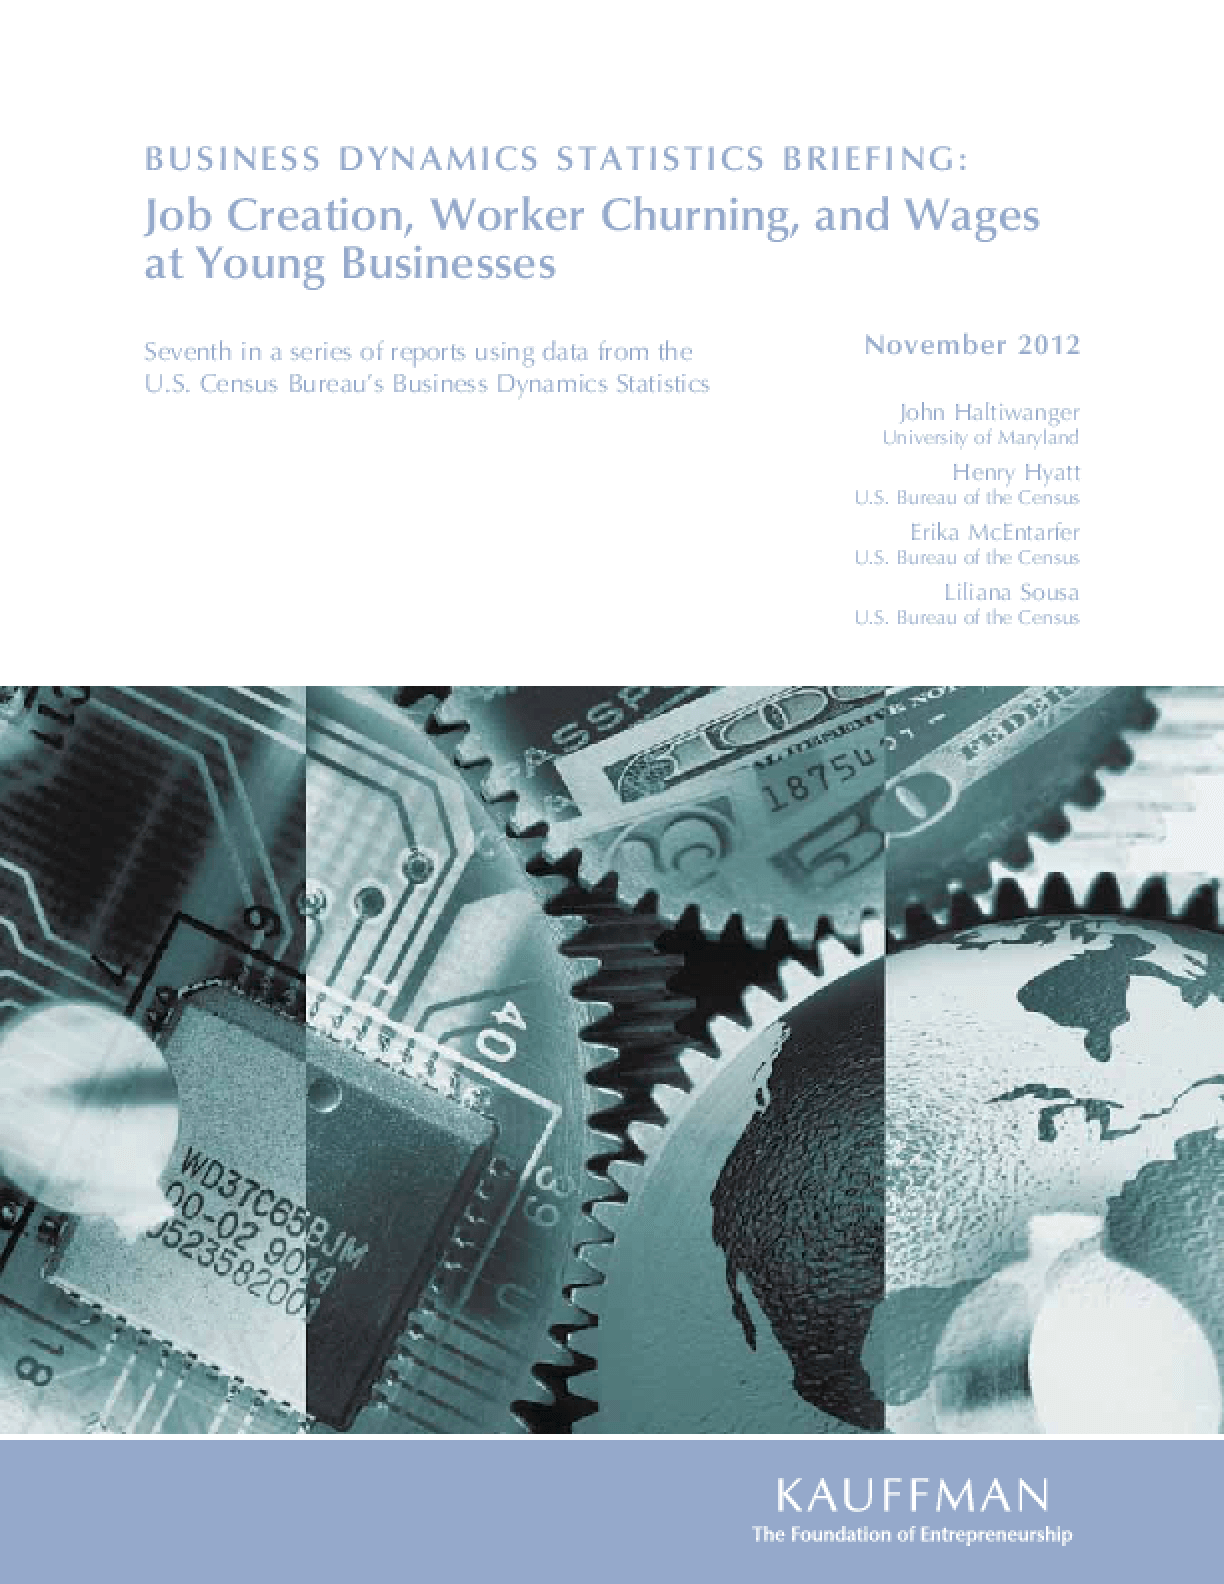 Job Creation, Worker Churning, and Wages at Young Businesses